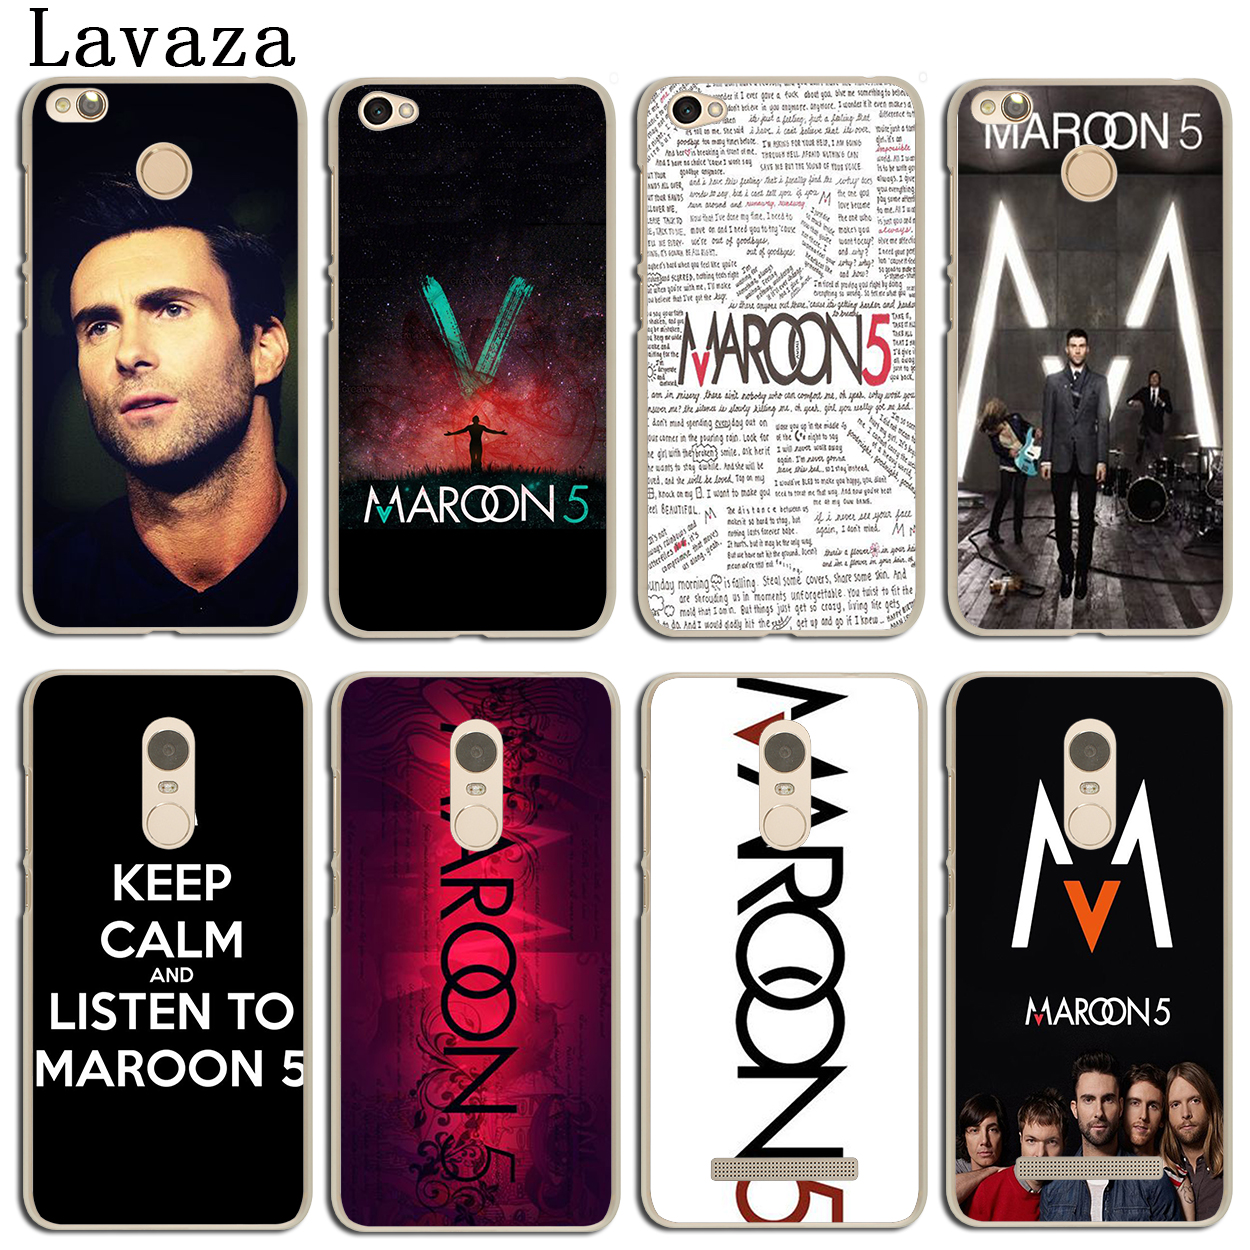 Lavaza maroon 5 Phone Cover Case for Xiaomi Mi 8 SE A1 5X MIX 2S MiA1 Mi8 MI6 Redmi S2 Note 4 4X 4A 3 6 Pro 5 Plus 5A Prime ...